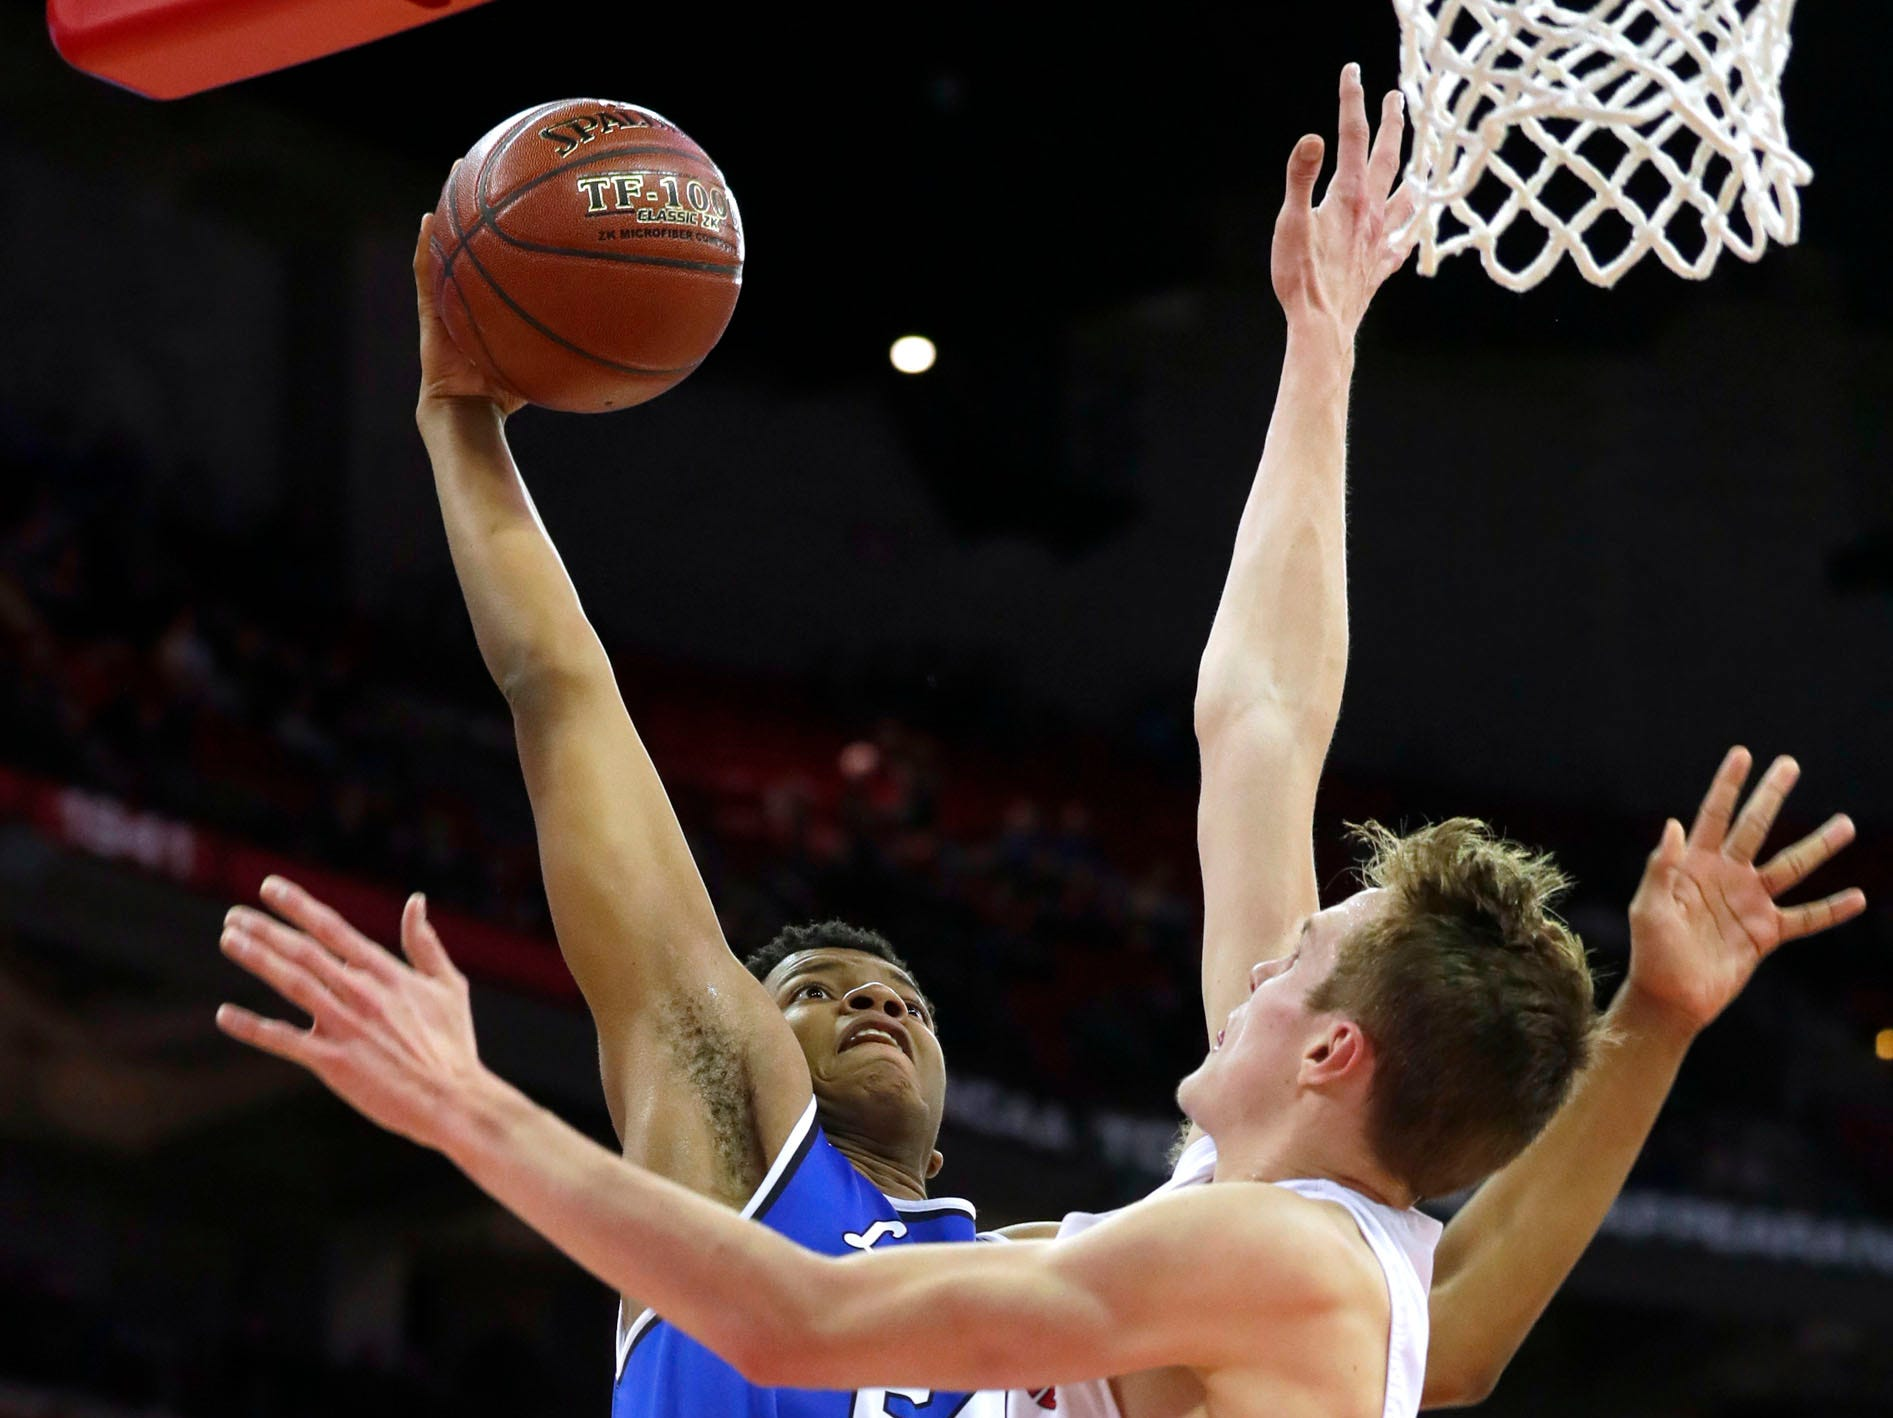 Brookfield Central's David Joplin drives to the basketball against Sun Prairie's Brock Voigt during the  D1 championship game at the WIAA 2019 Boys State Basketball Tournament in Madison, Wisconsin, Saturday, March 16, 2019.  Rick Wood/Milwaukee Journal Sentinel